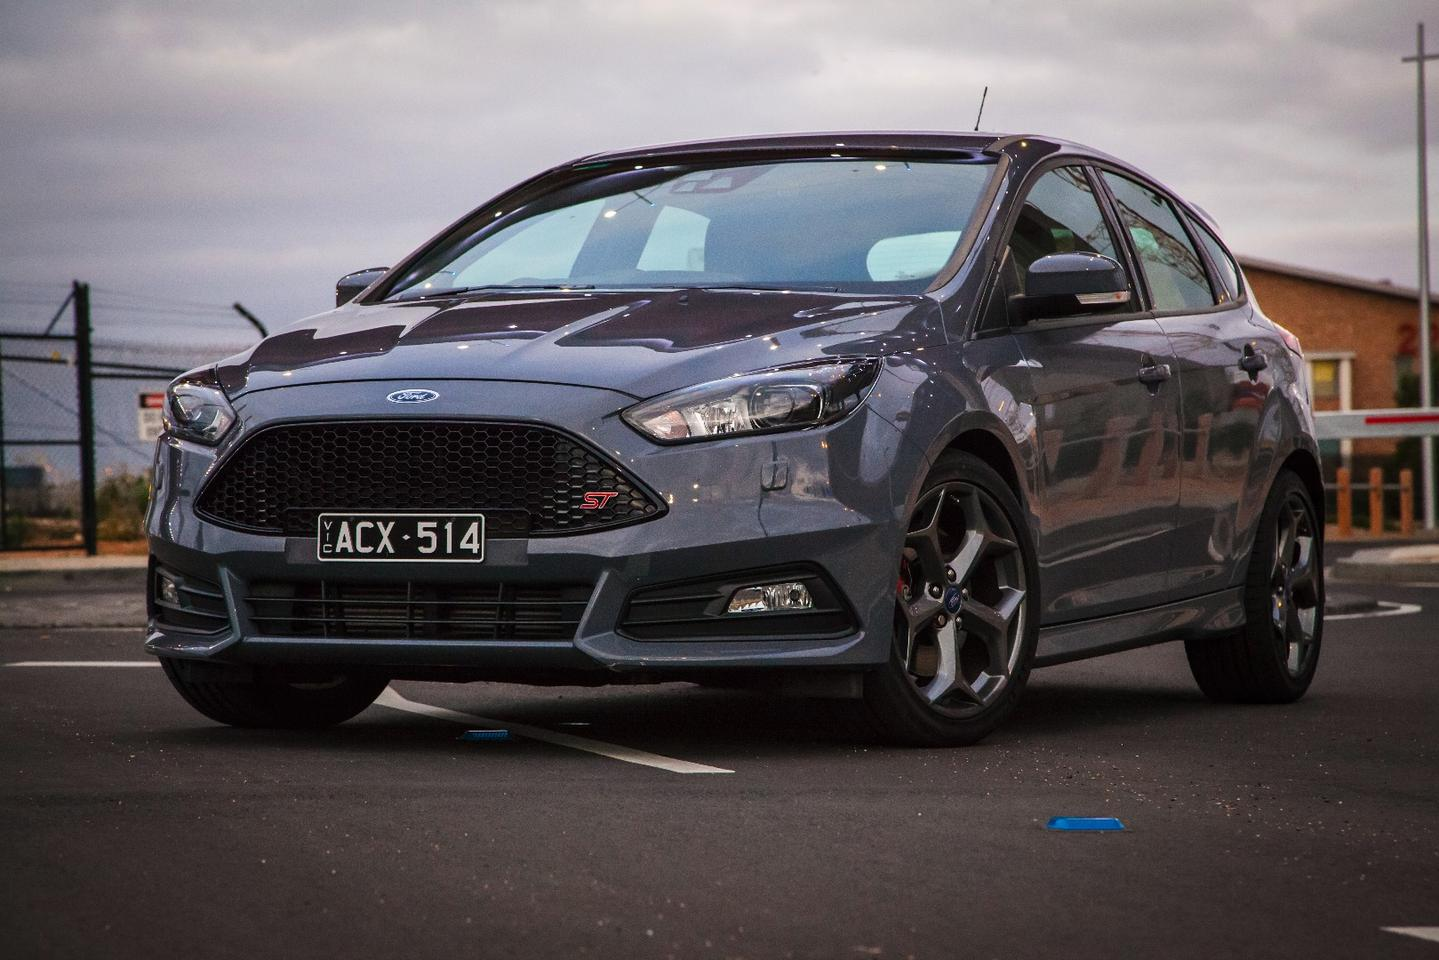 The Ford Focus ST strikes a fine balance between stiffness and everyday comfort